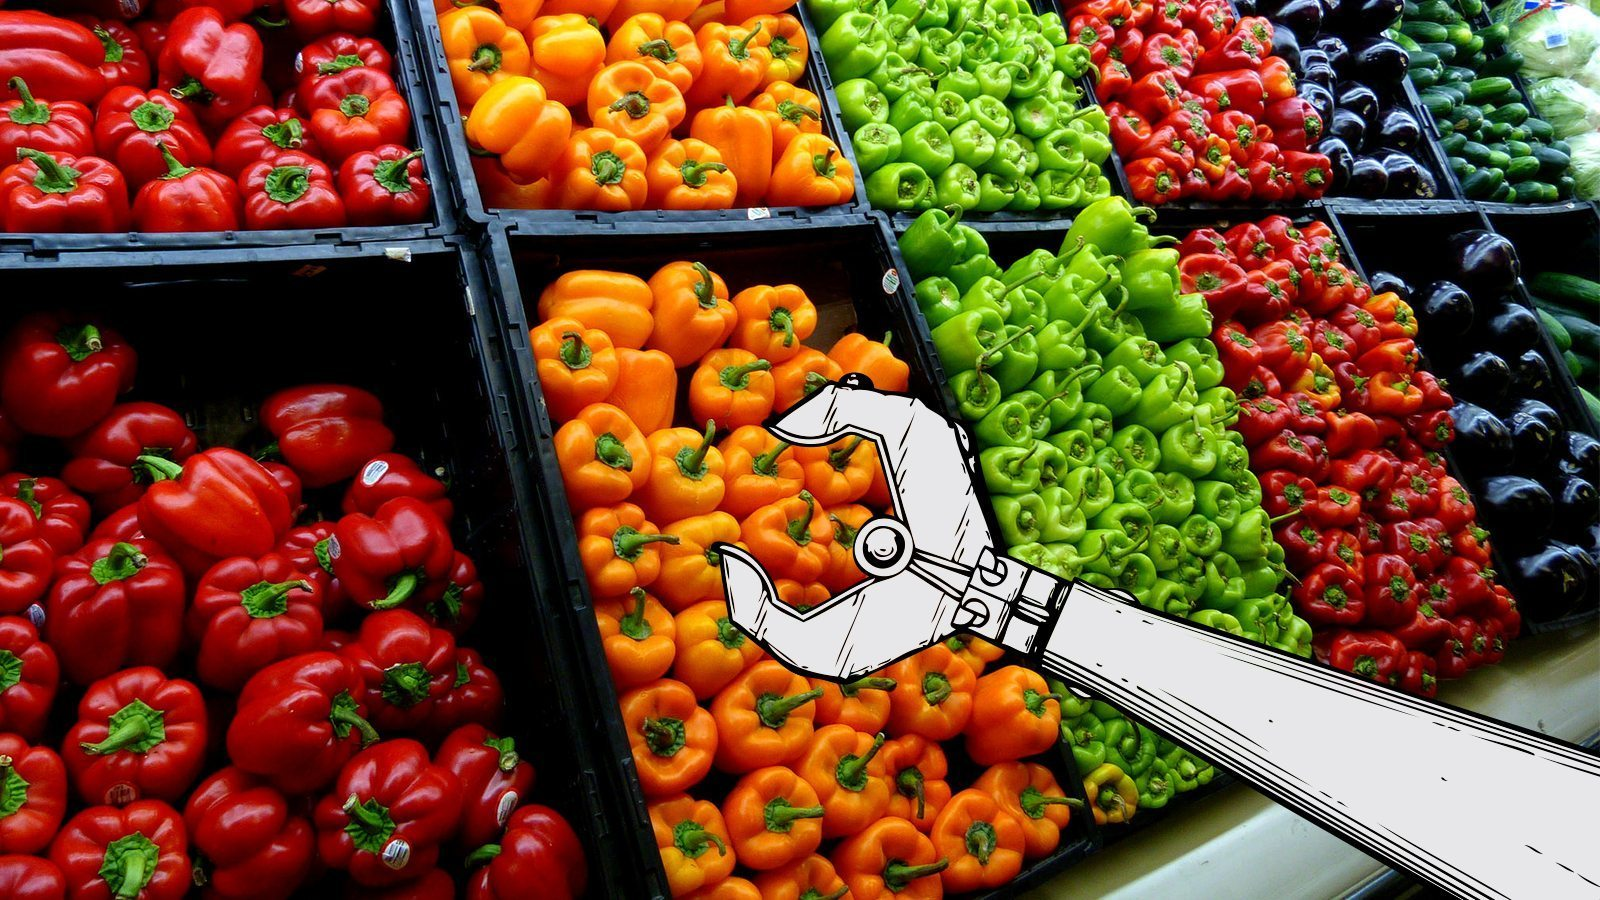 Image: Illustration of an agricultural robot arm reaching for peppers in the produce aisle.